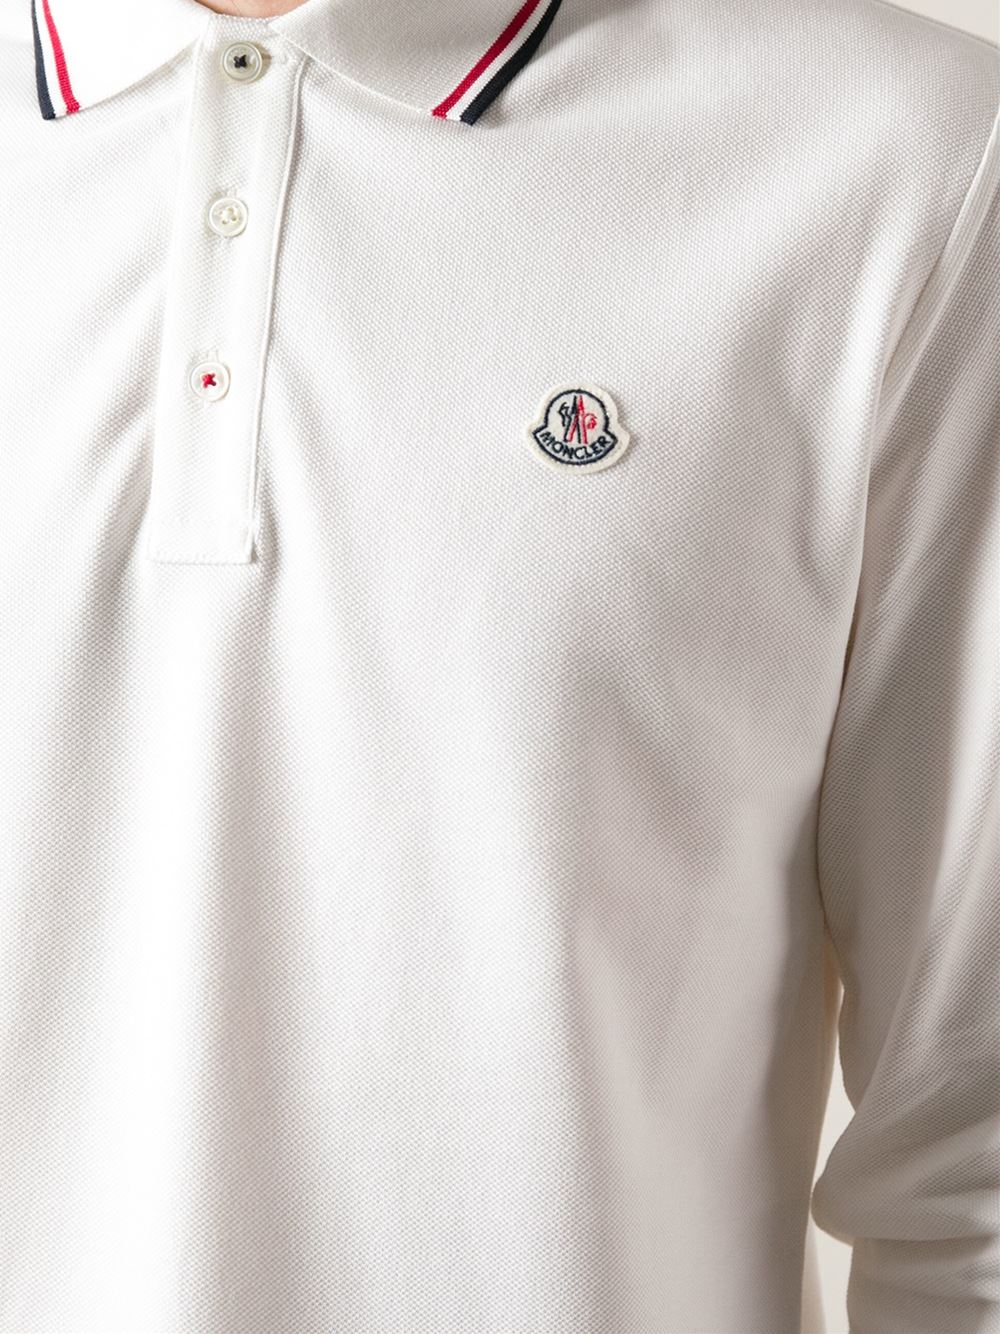 f6e7cad8067a Men Moncler For Long Shirt White Sleeve Lyst Polo In POqSC0w